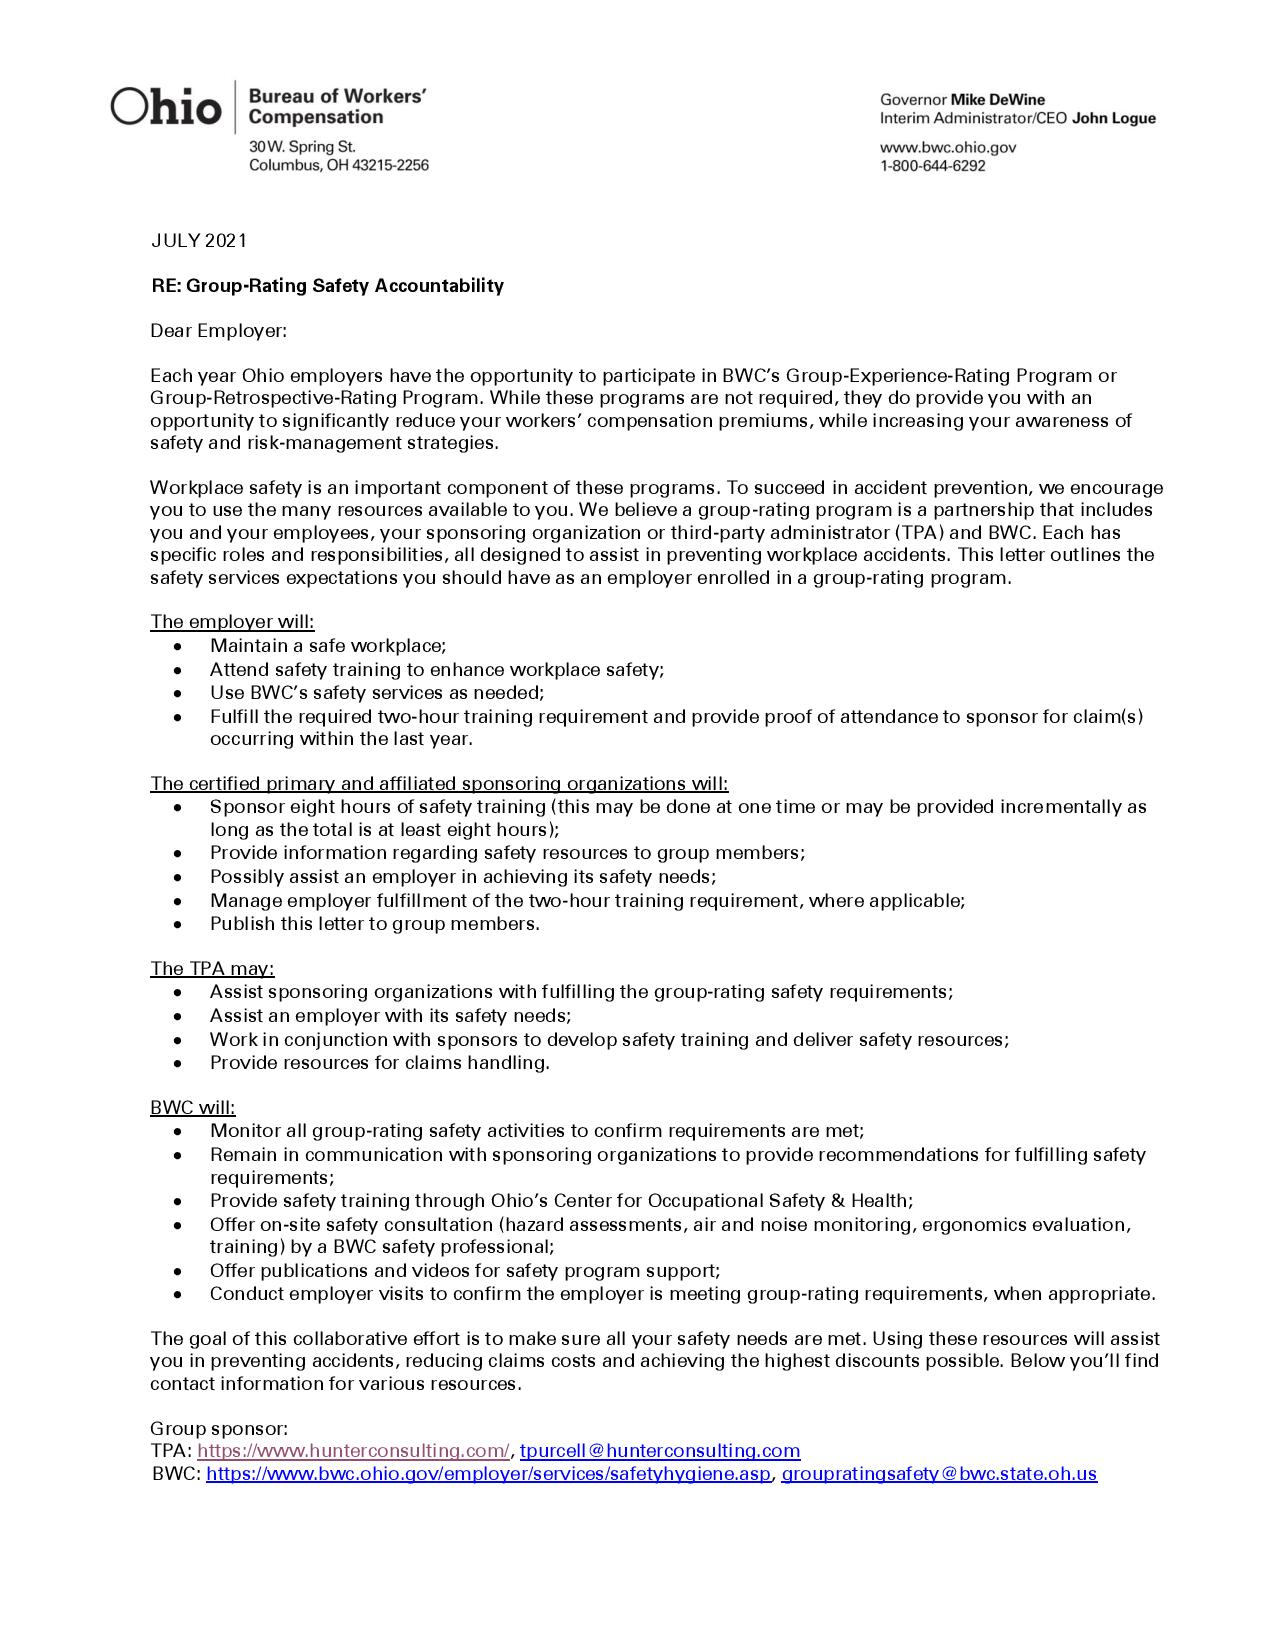 CY21 Group Rating Safety Accountability Letter